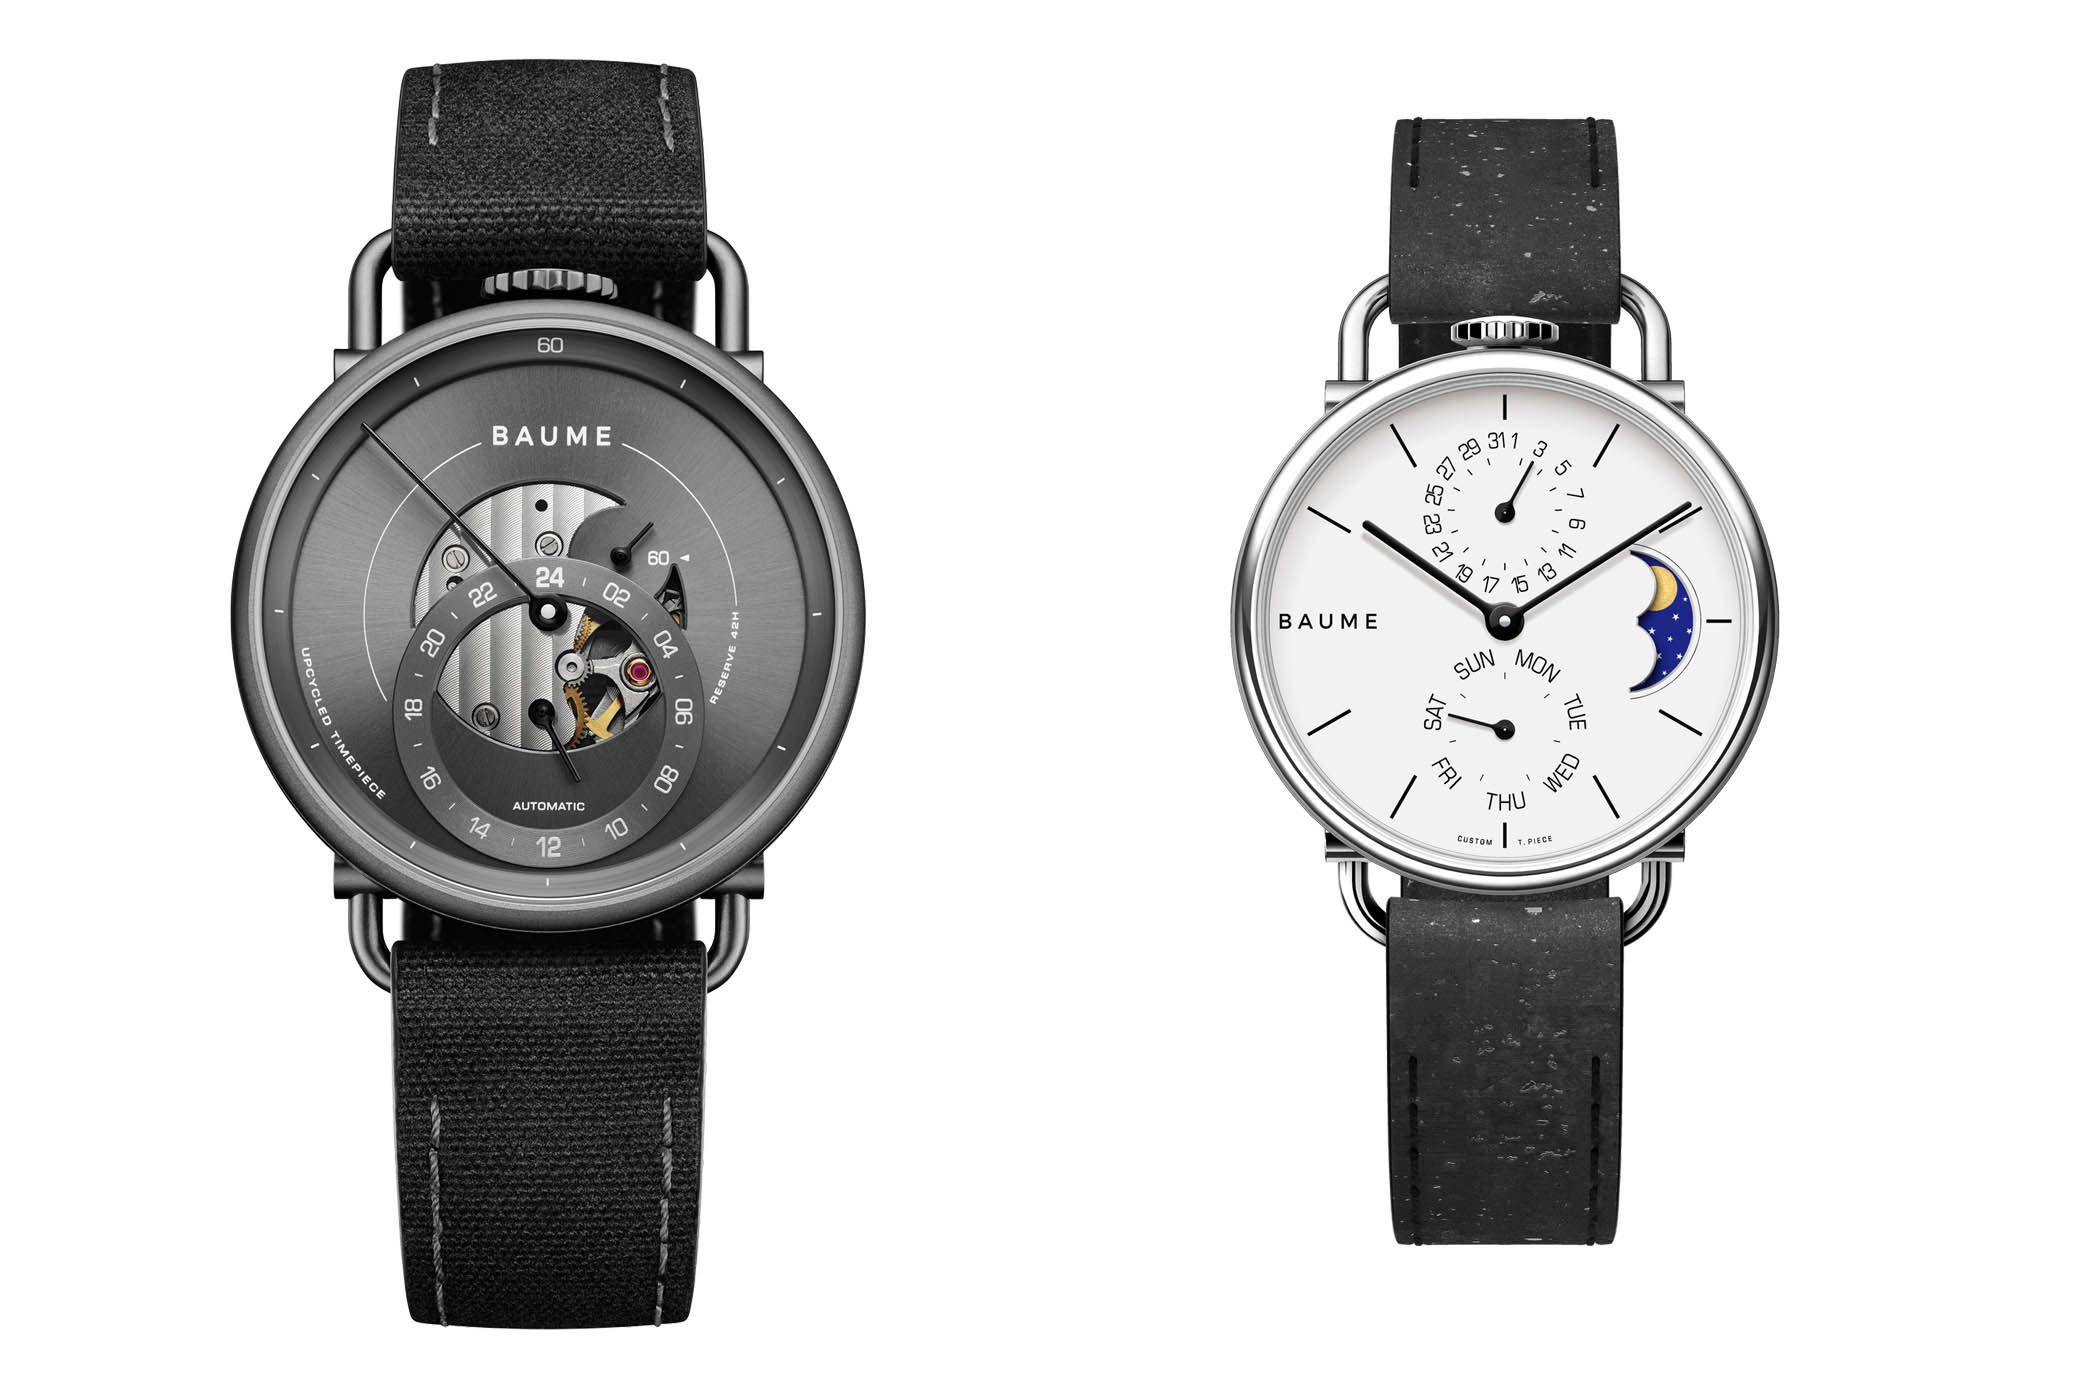 Baume Iconic and Custom Timepiece of 35mm with moon phase